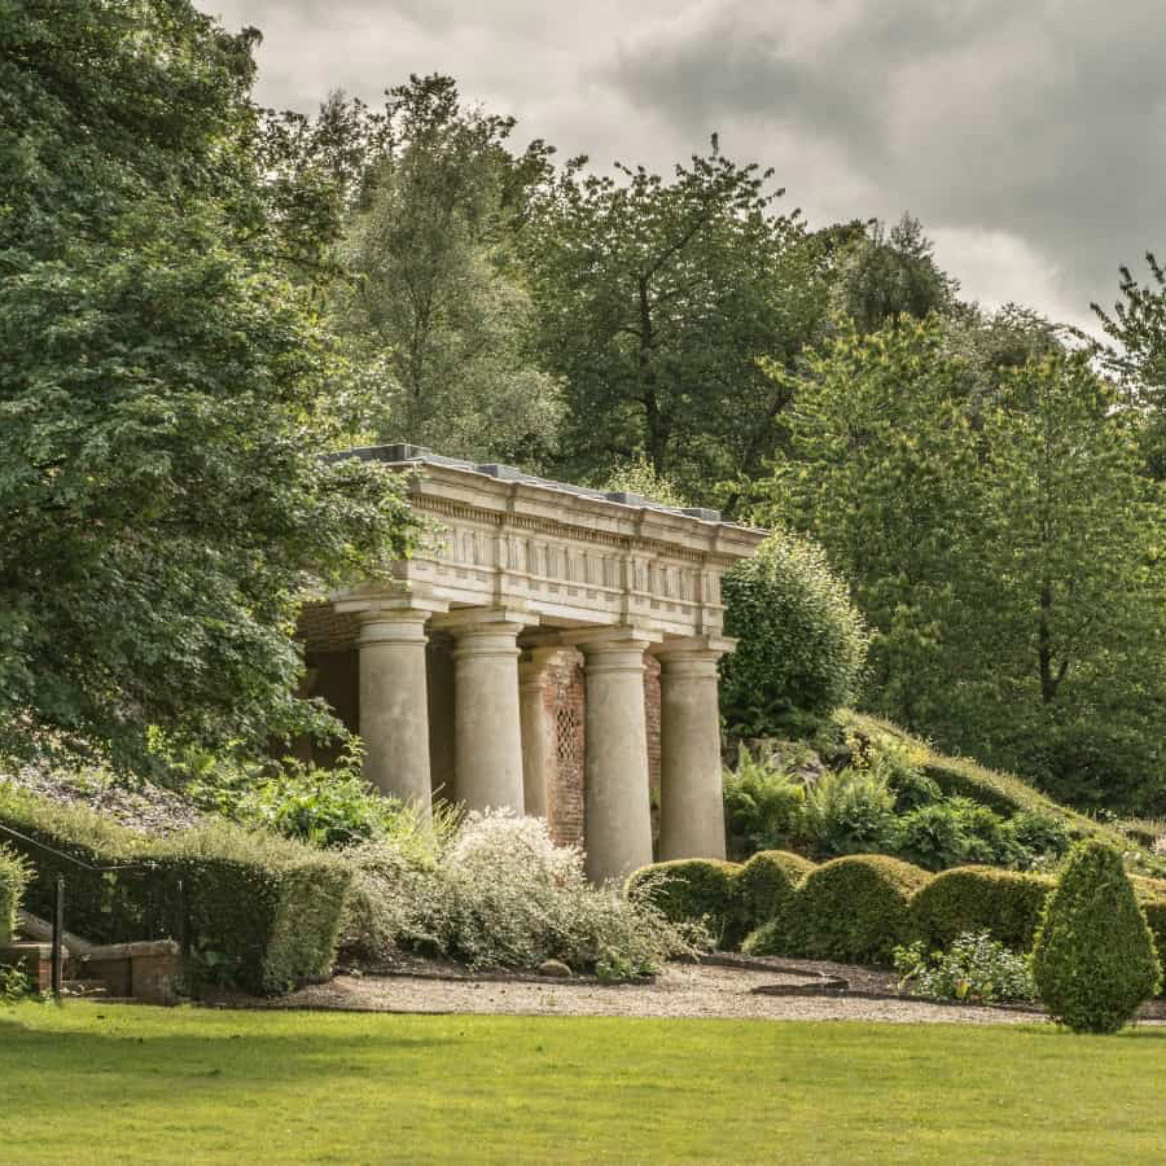 The Italian Gardens and temple